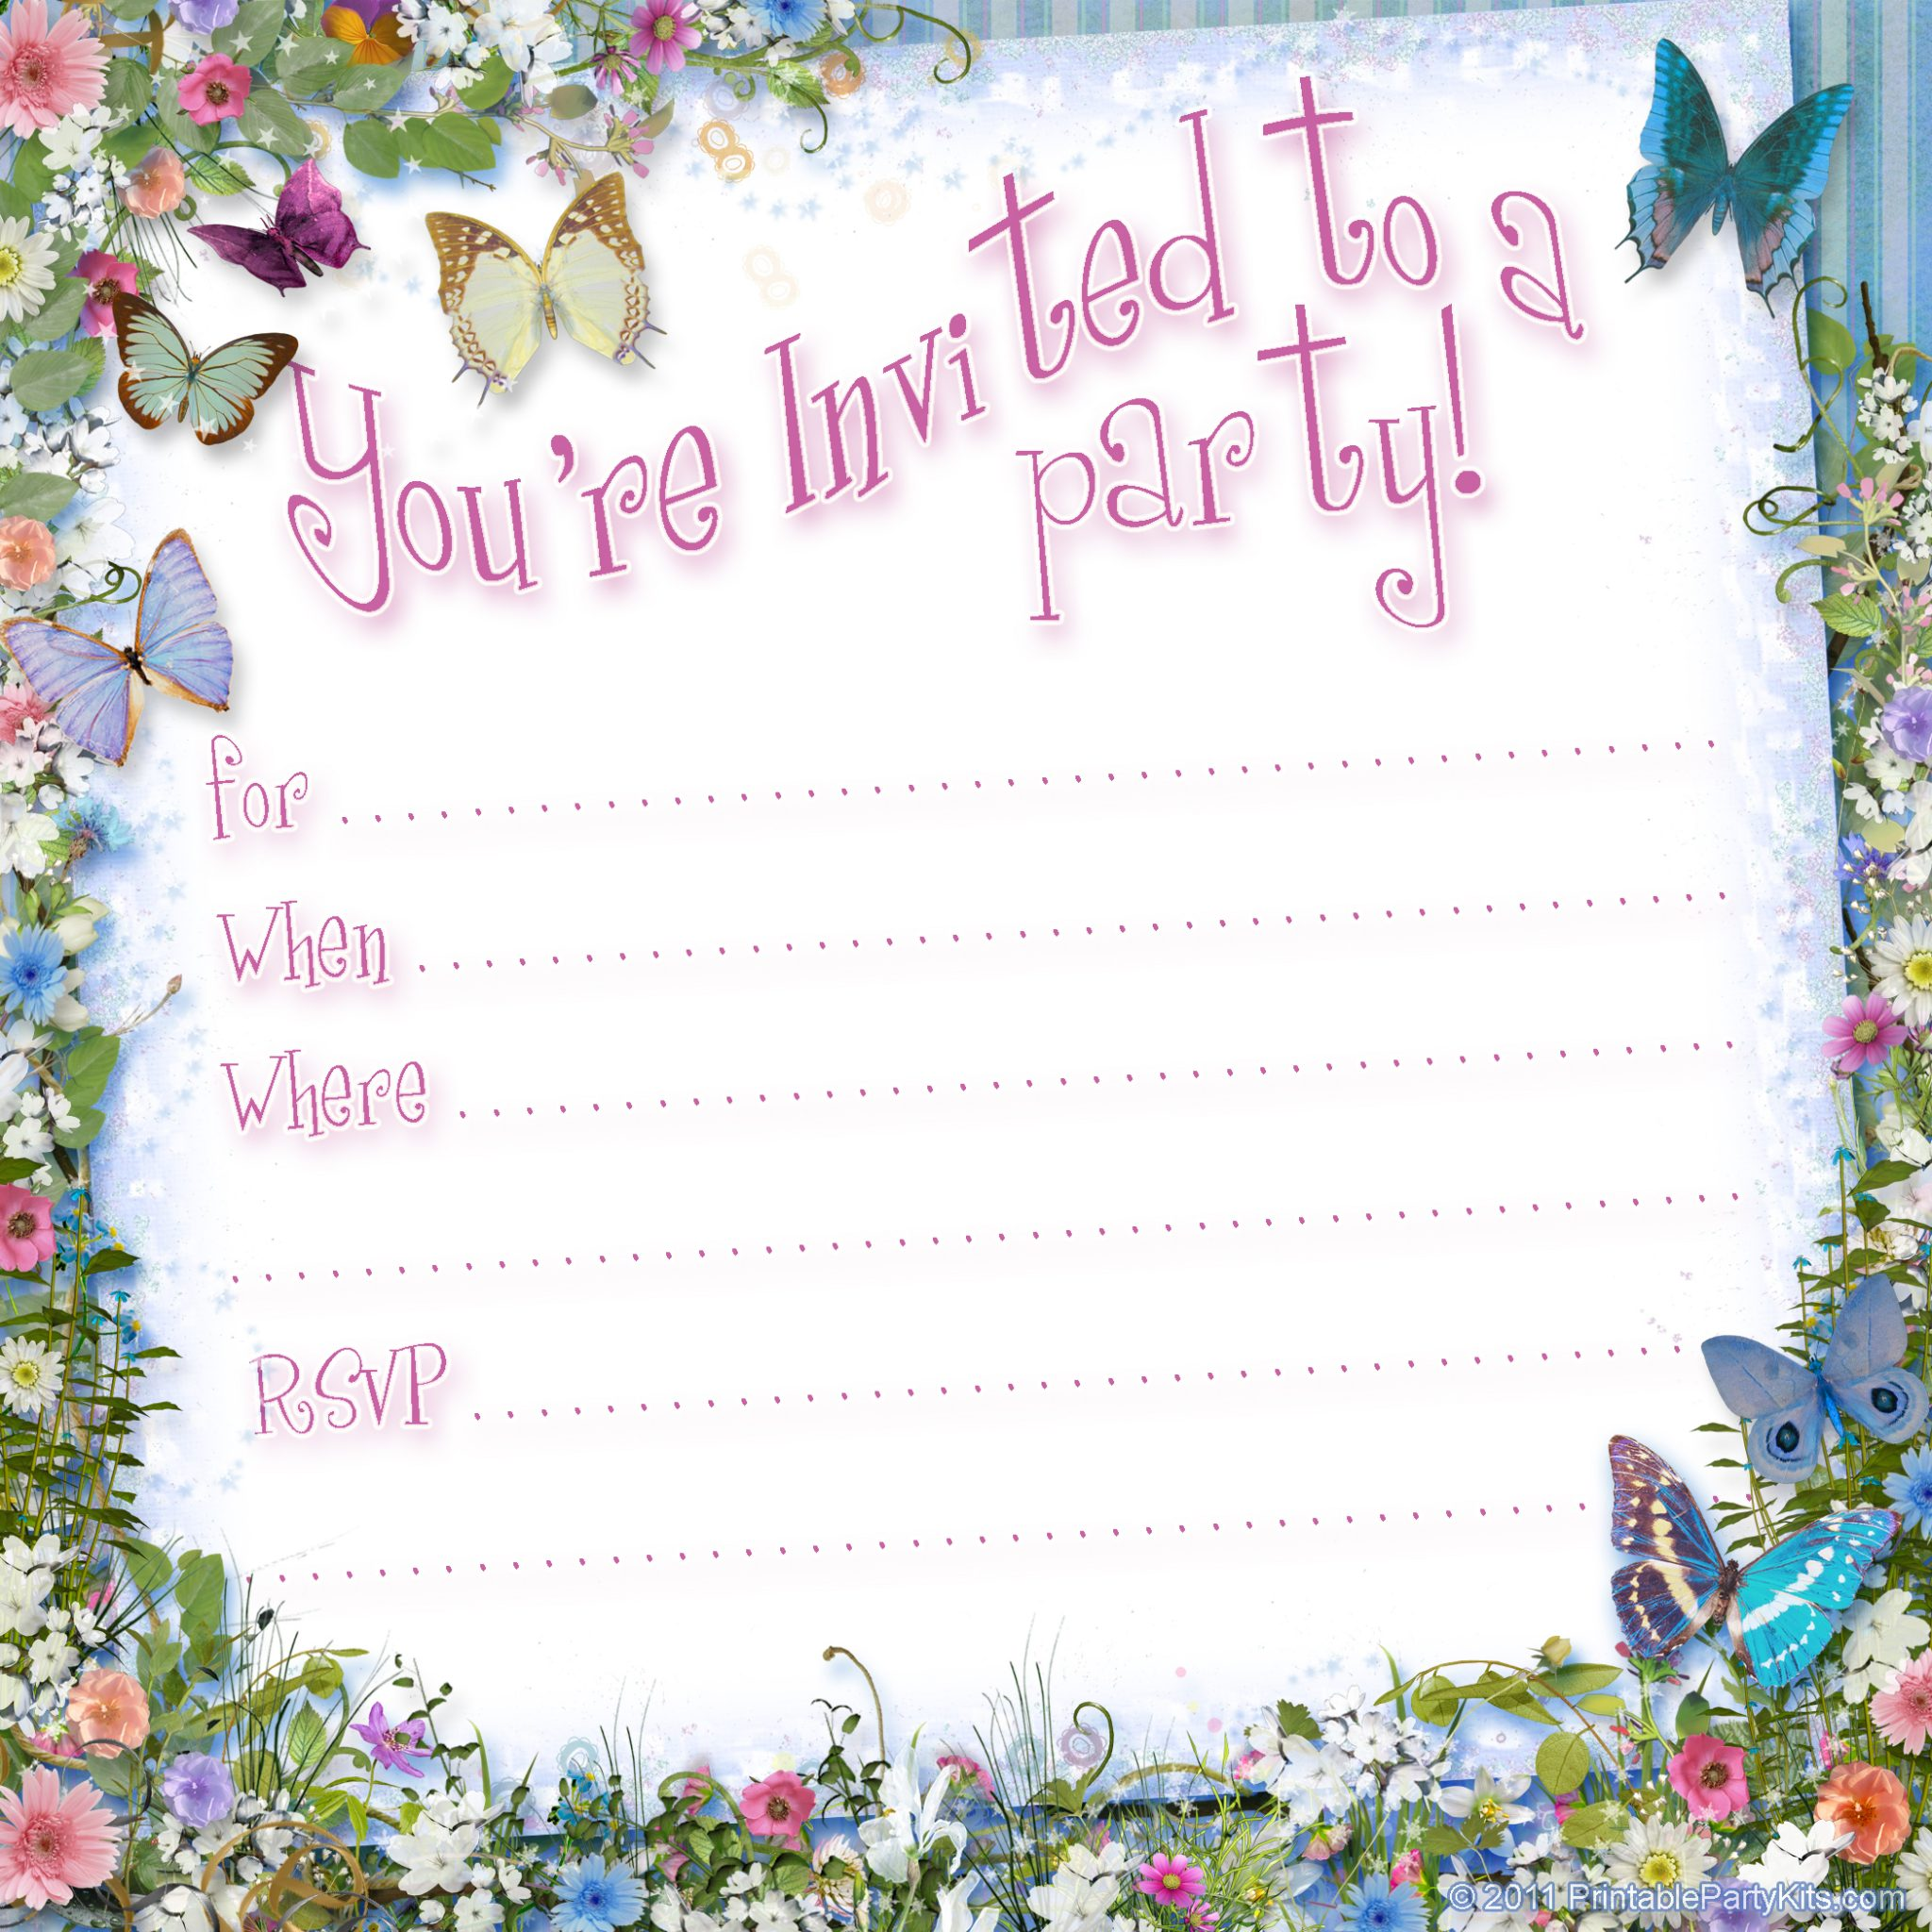 Party Invitation Template Peellandfmtk - Party invitation template: free printable birthday party invitation templates